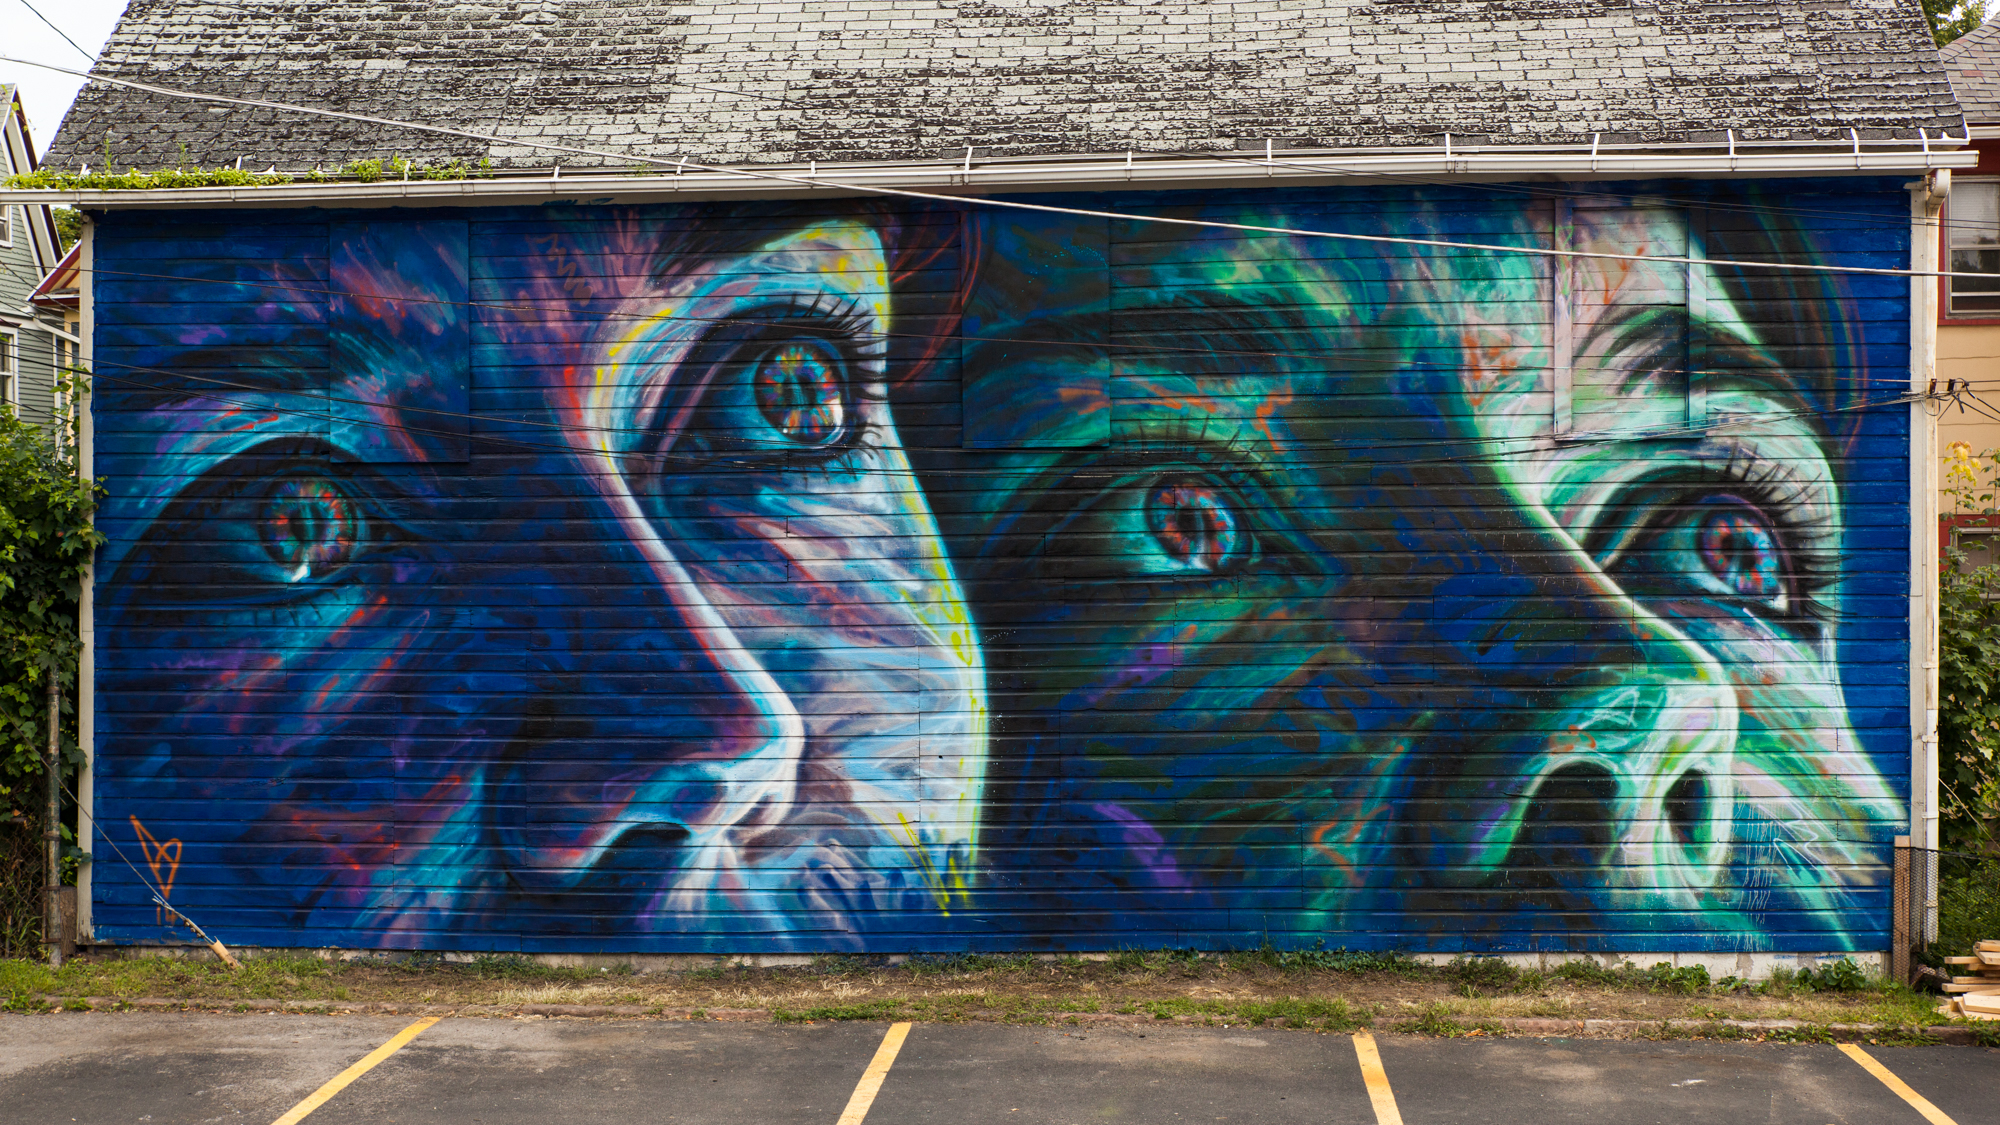 walltherapy: an intersection of street art and public health » in